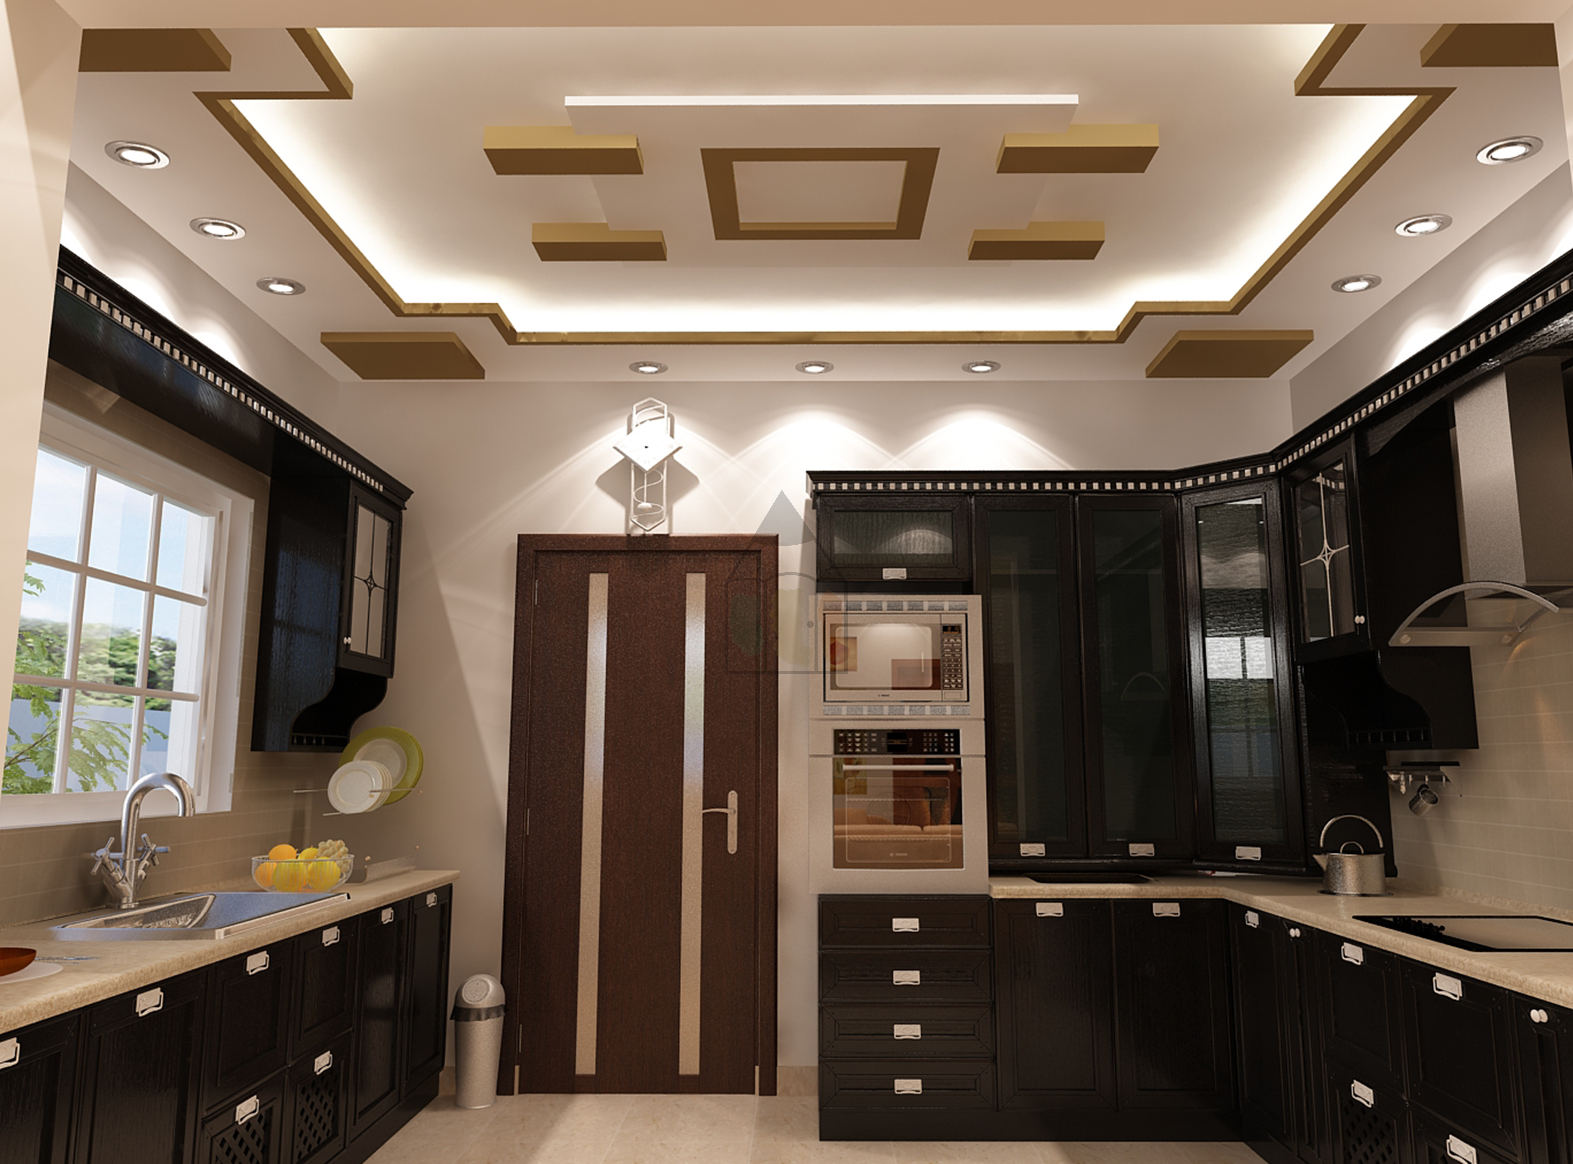 Pakistani Kitchen Design Kitchen Design In 2019 Kitchen Ceiling